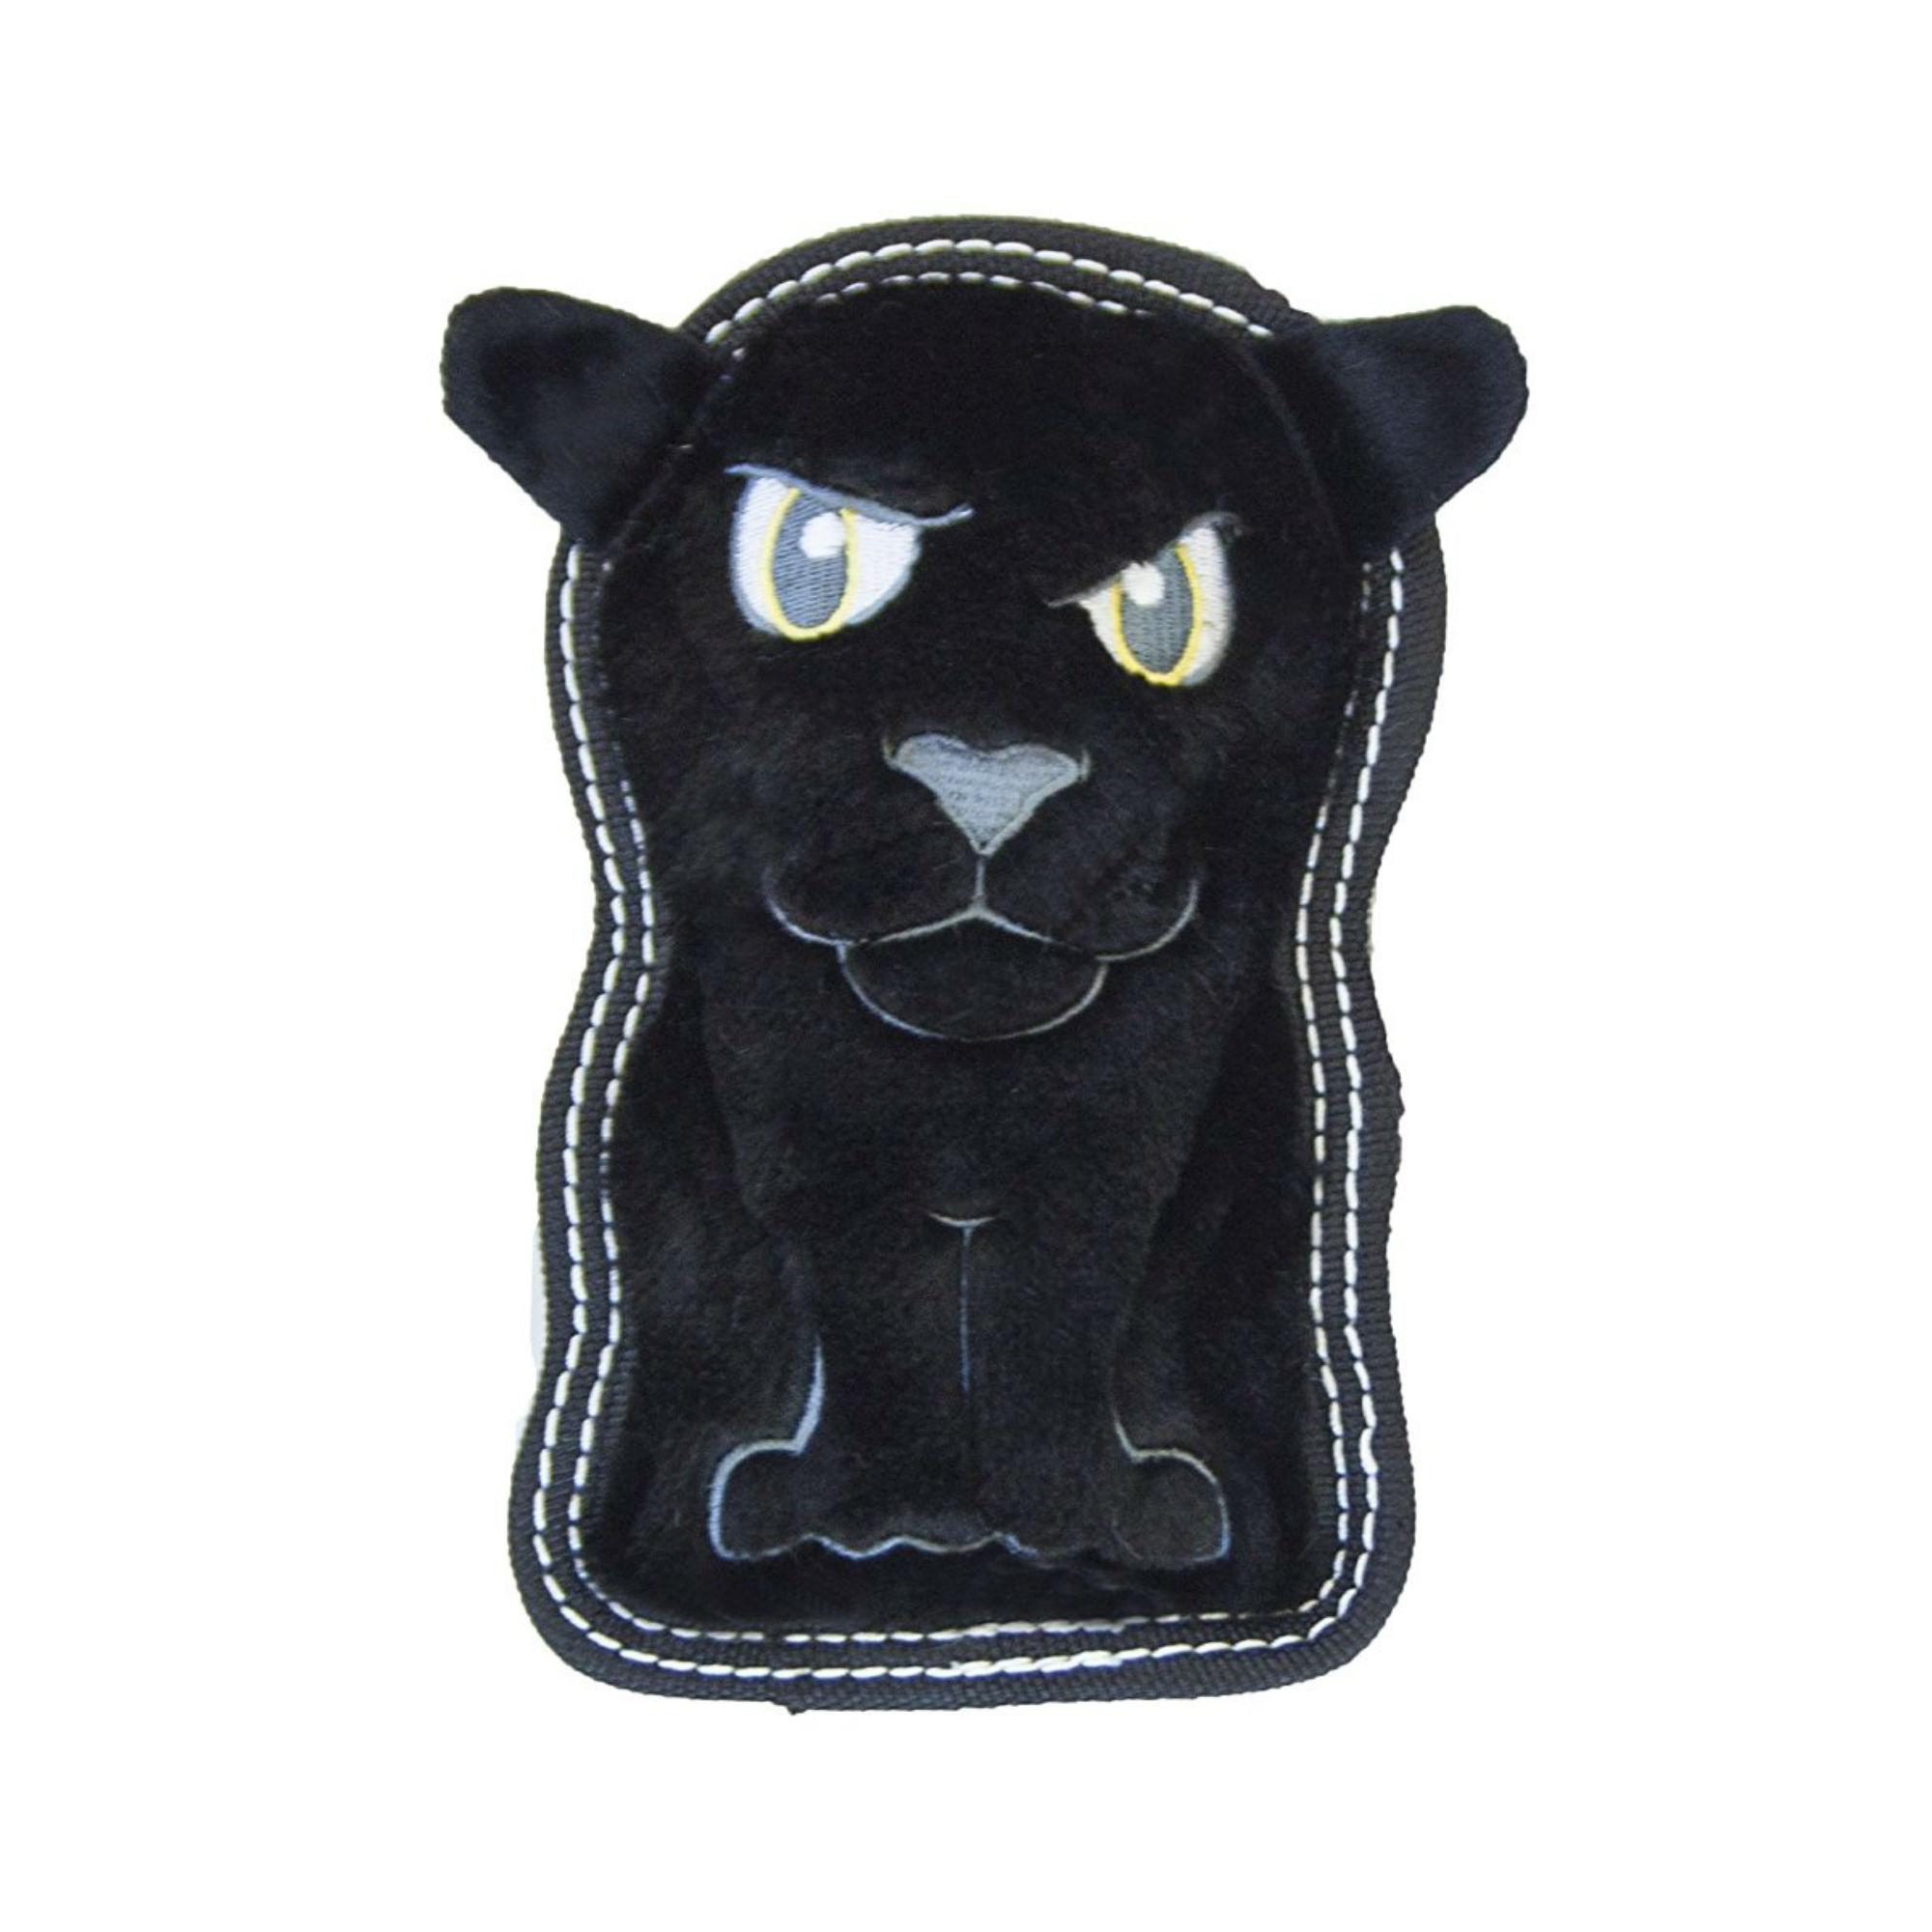 Invincibles Tough Seamz Dog Toy - Panther